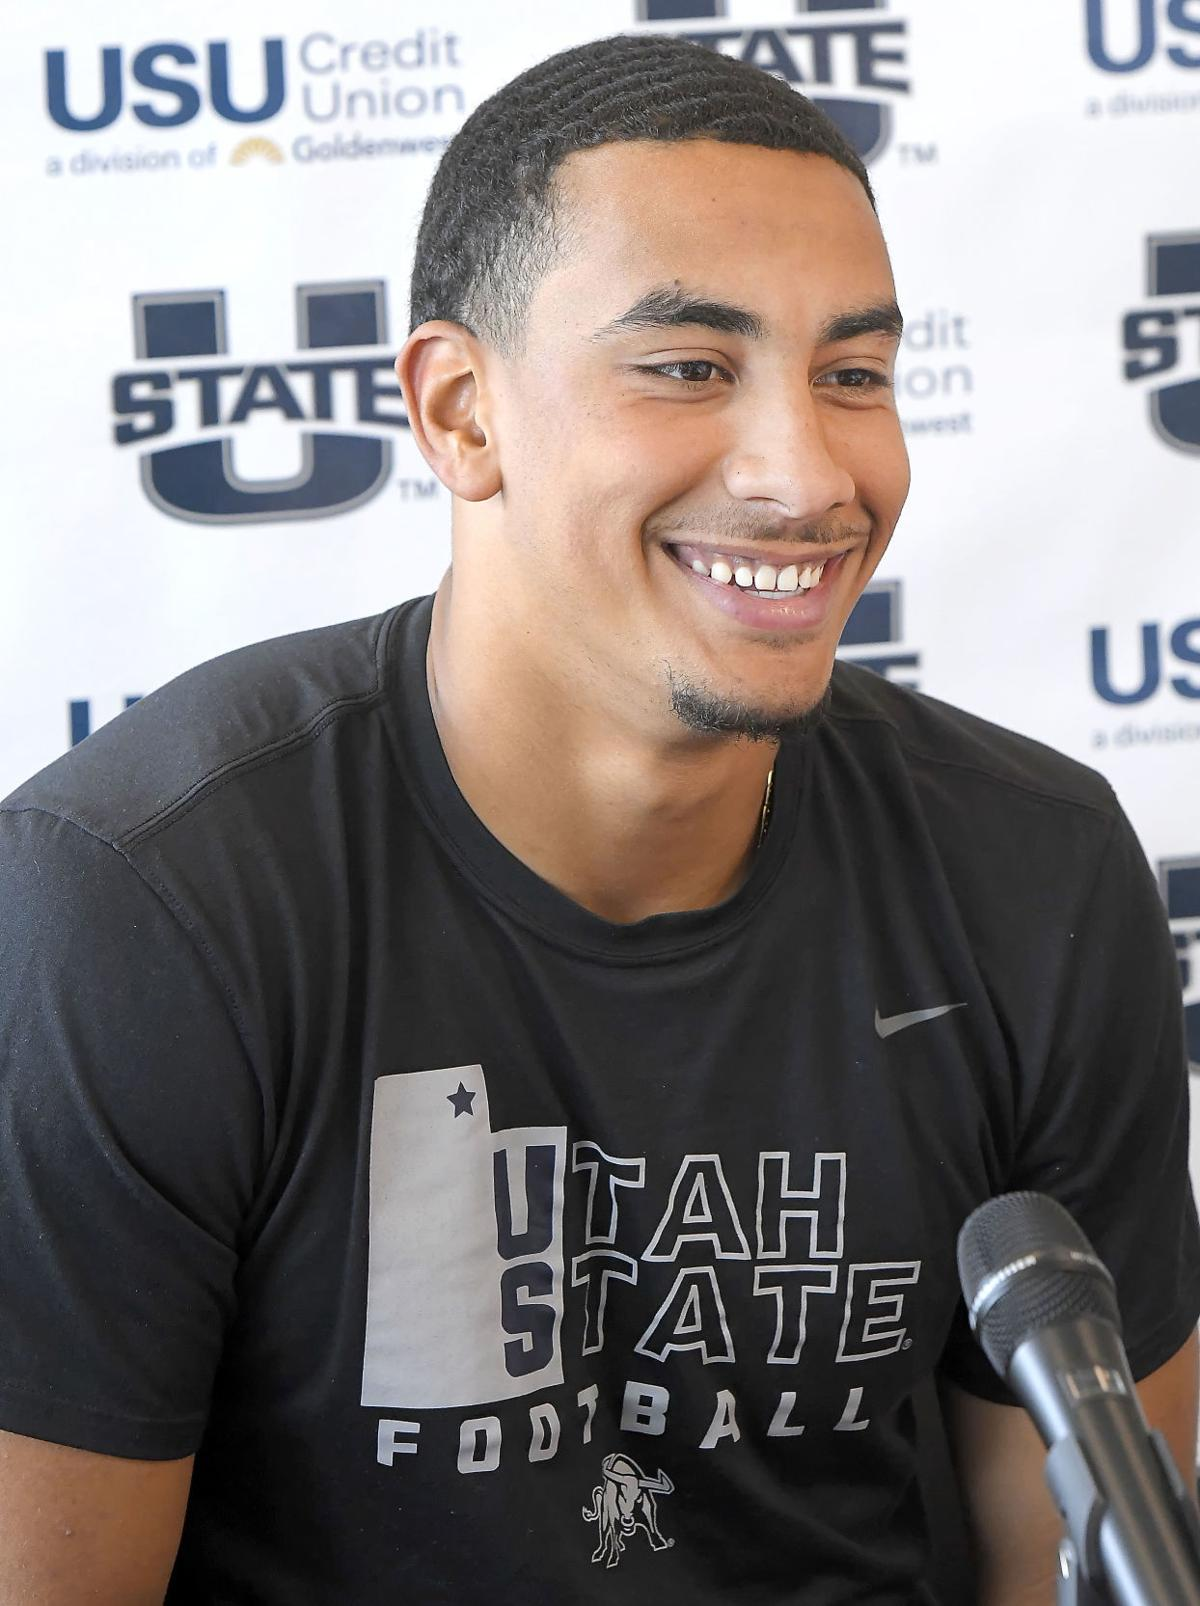 usu football media day LOVE